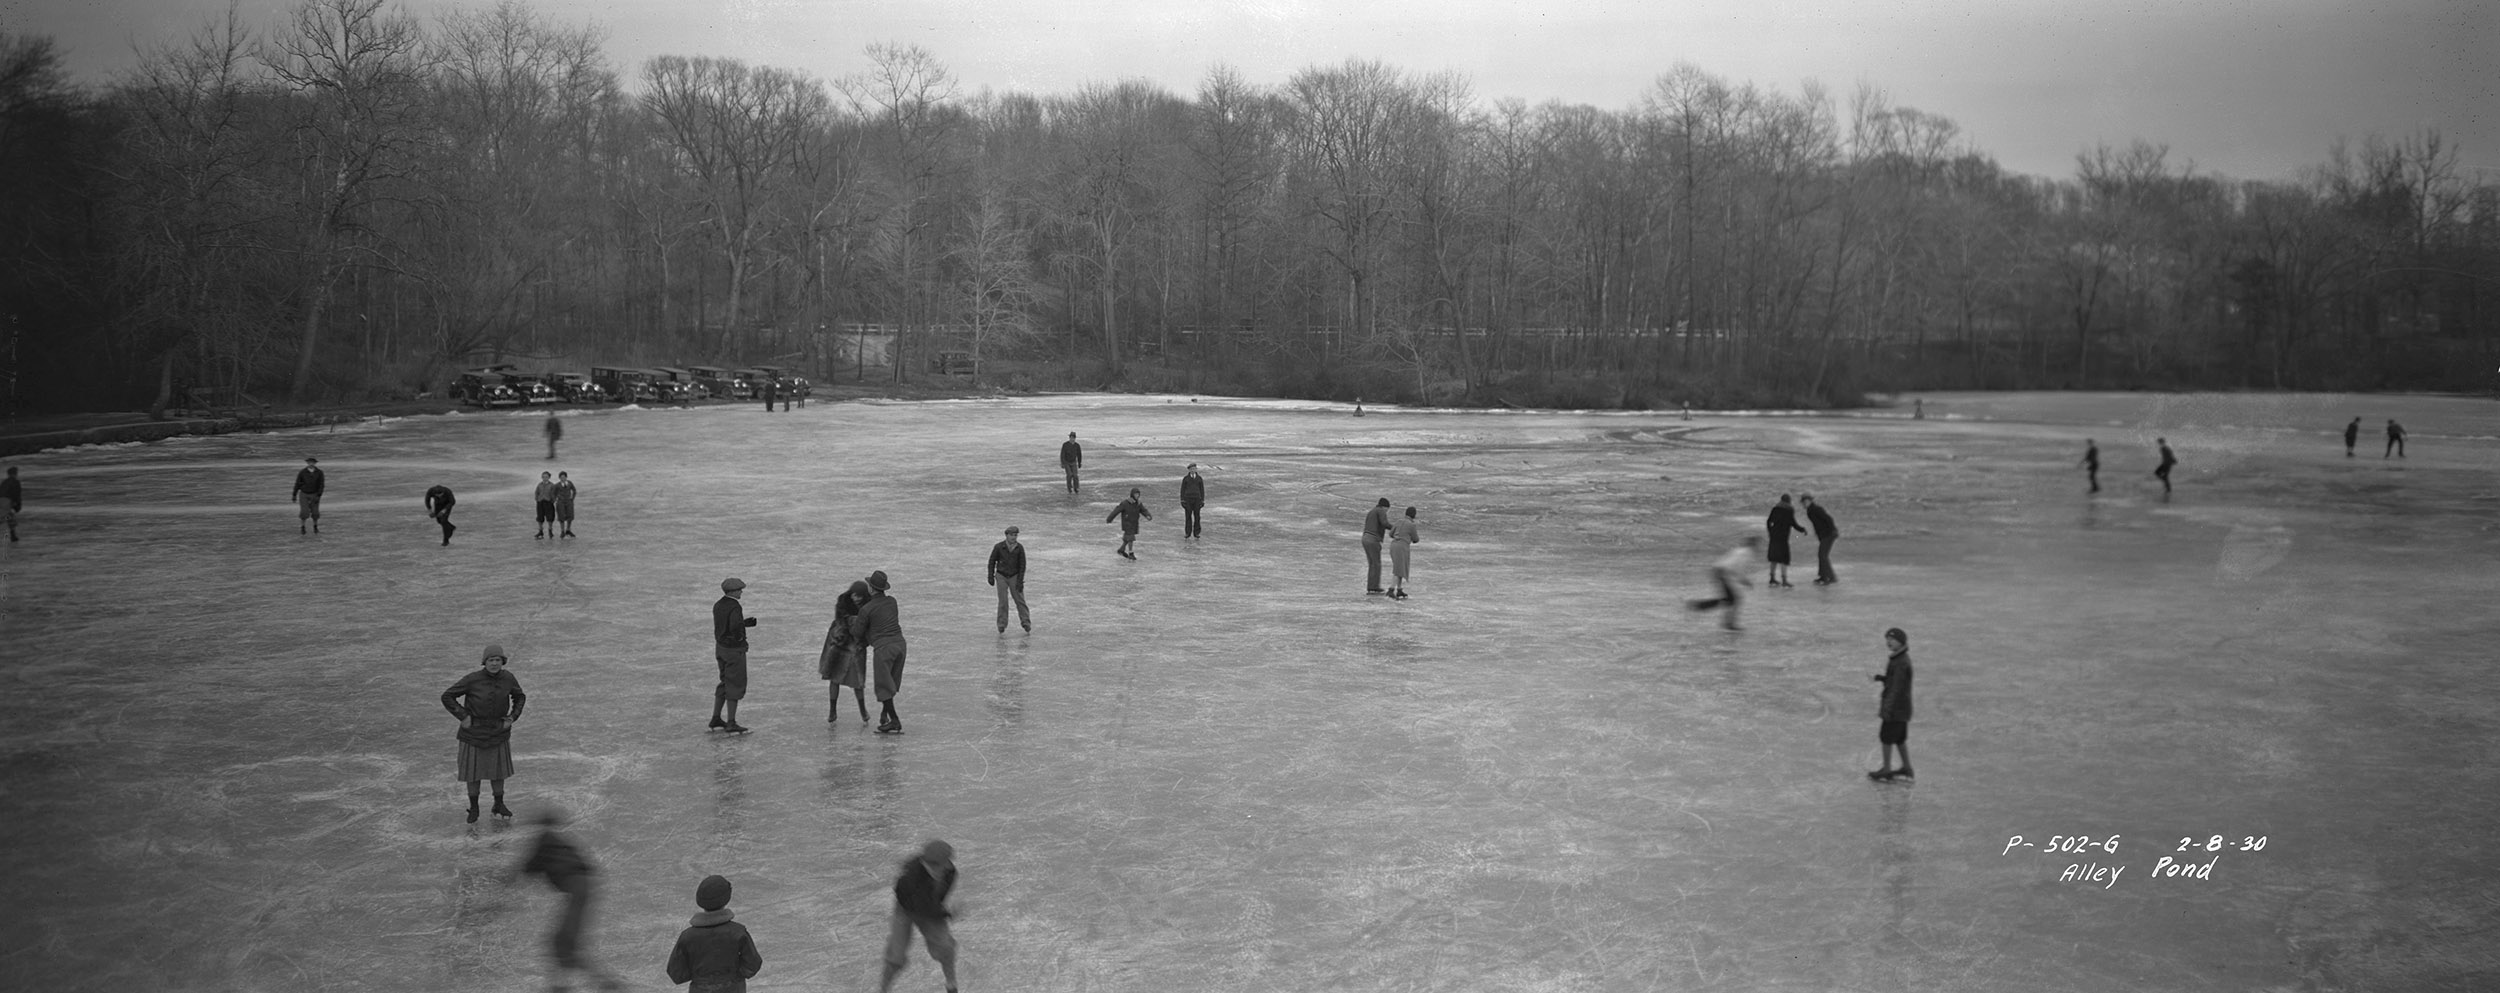 Skaters on Alley Pond, Queens, February 8, 1930. Borough President Queens Collection, NYC Municipal Archives.